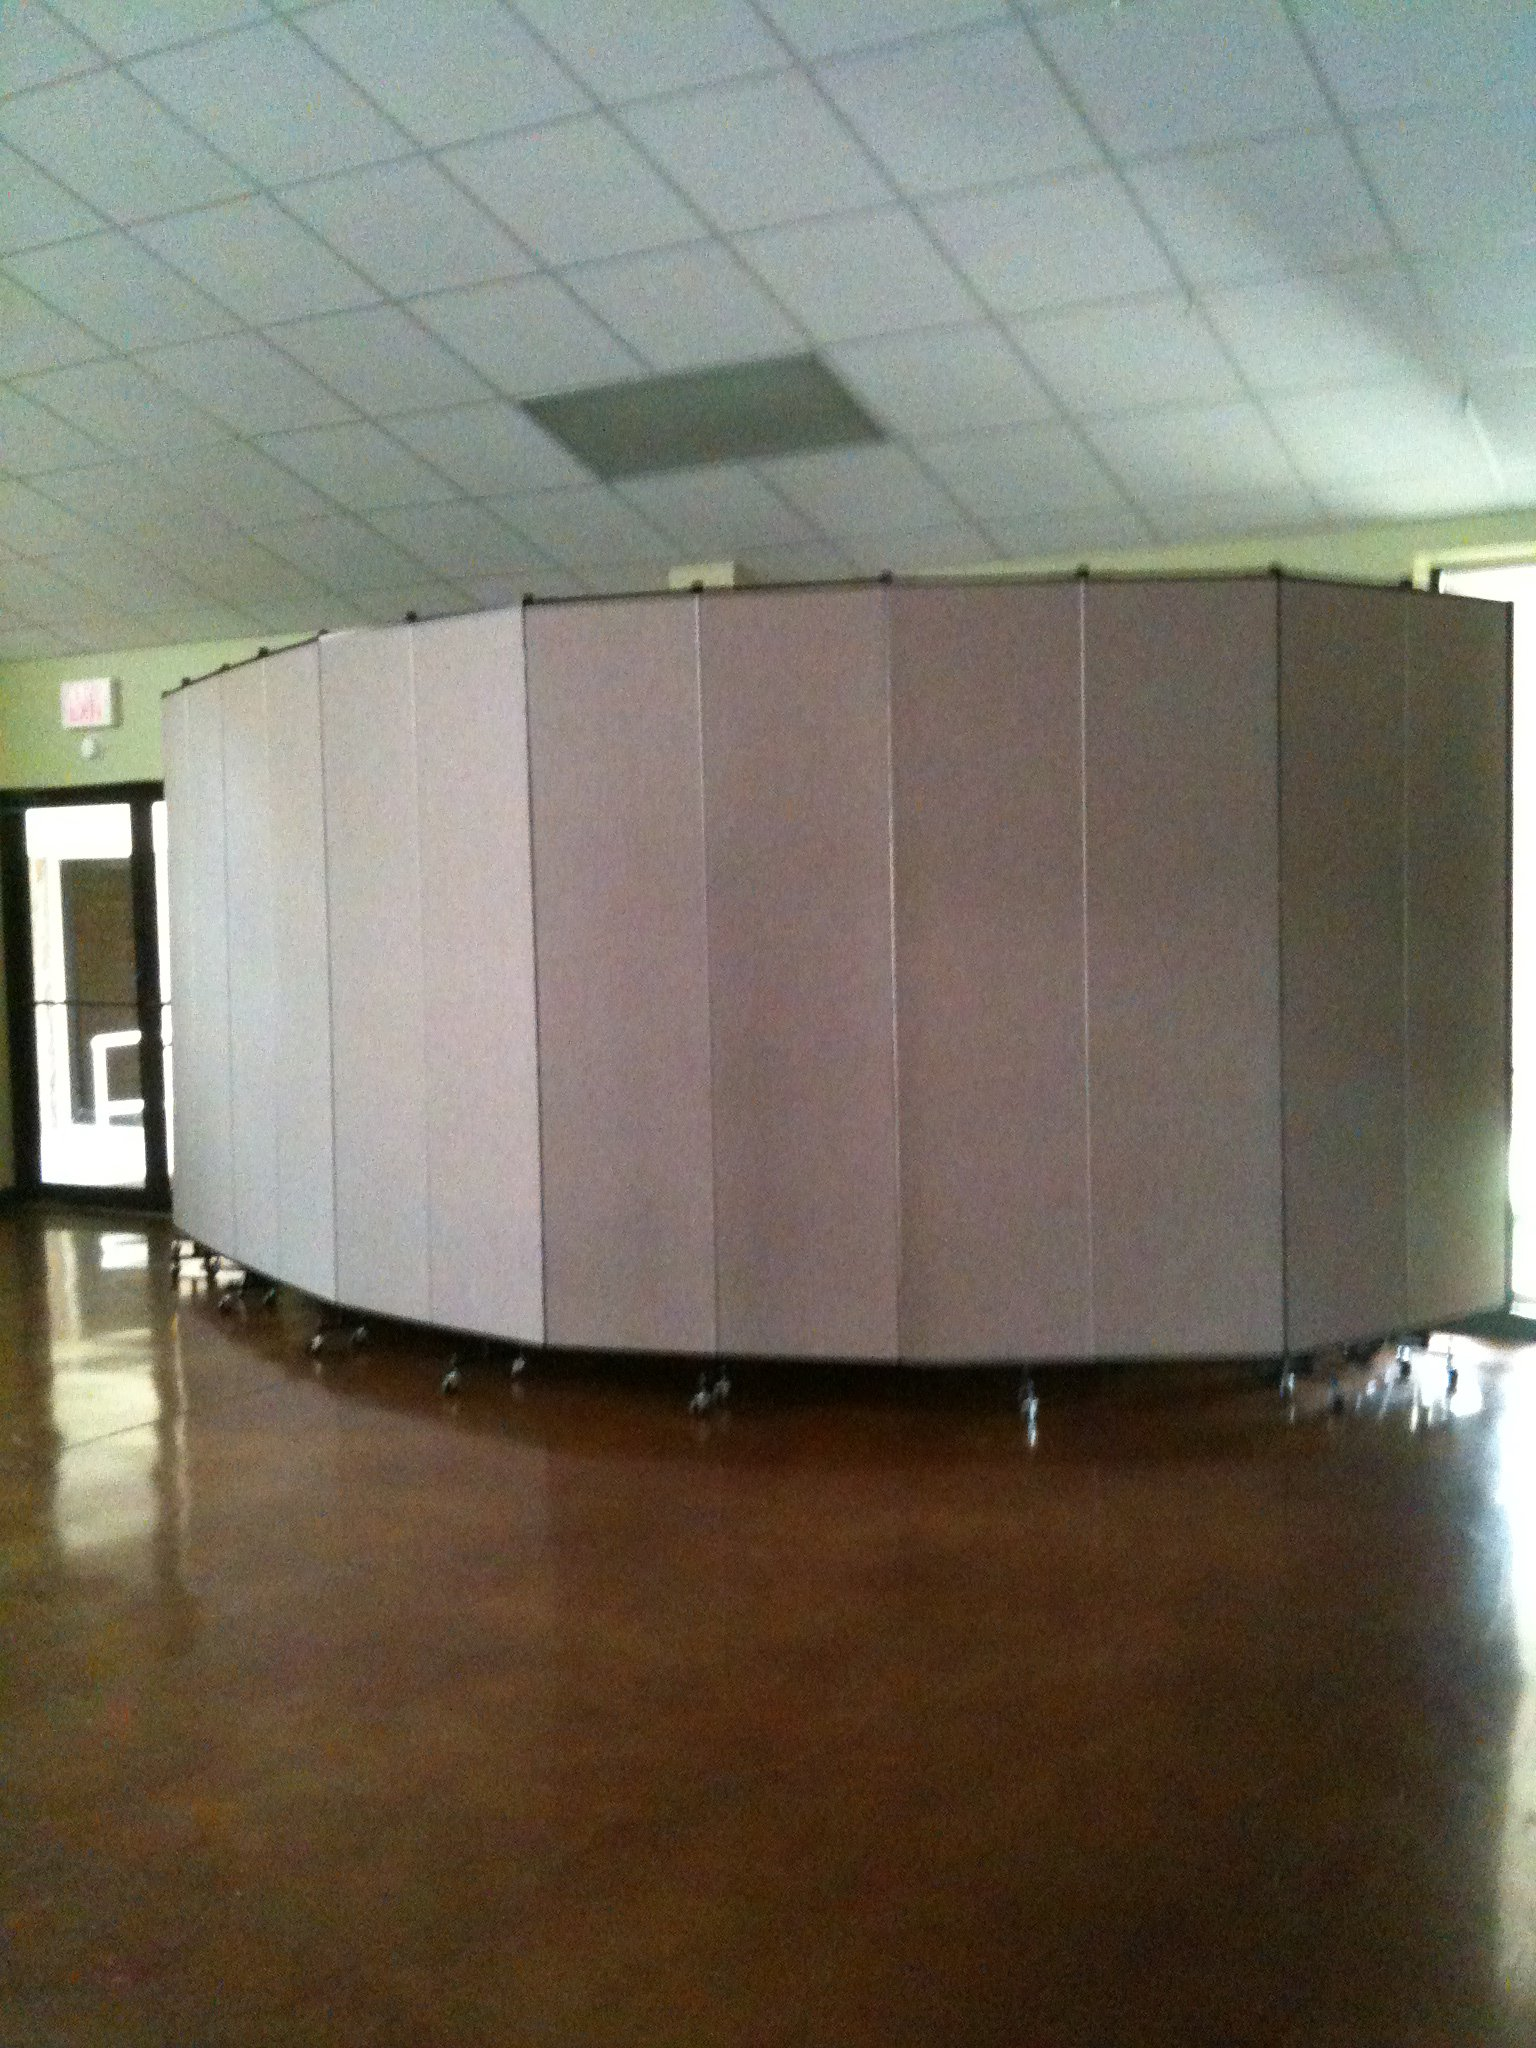 Room Divider hiding tables and chairs